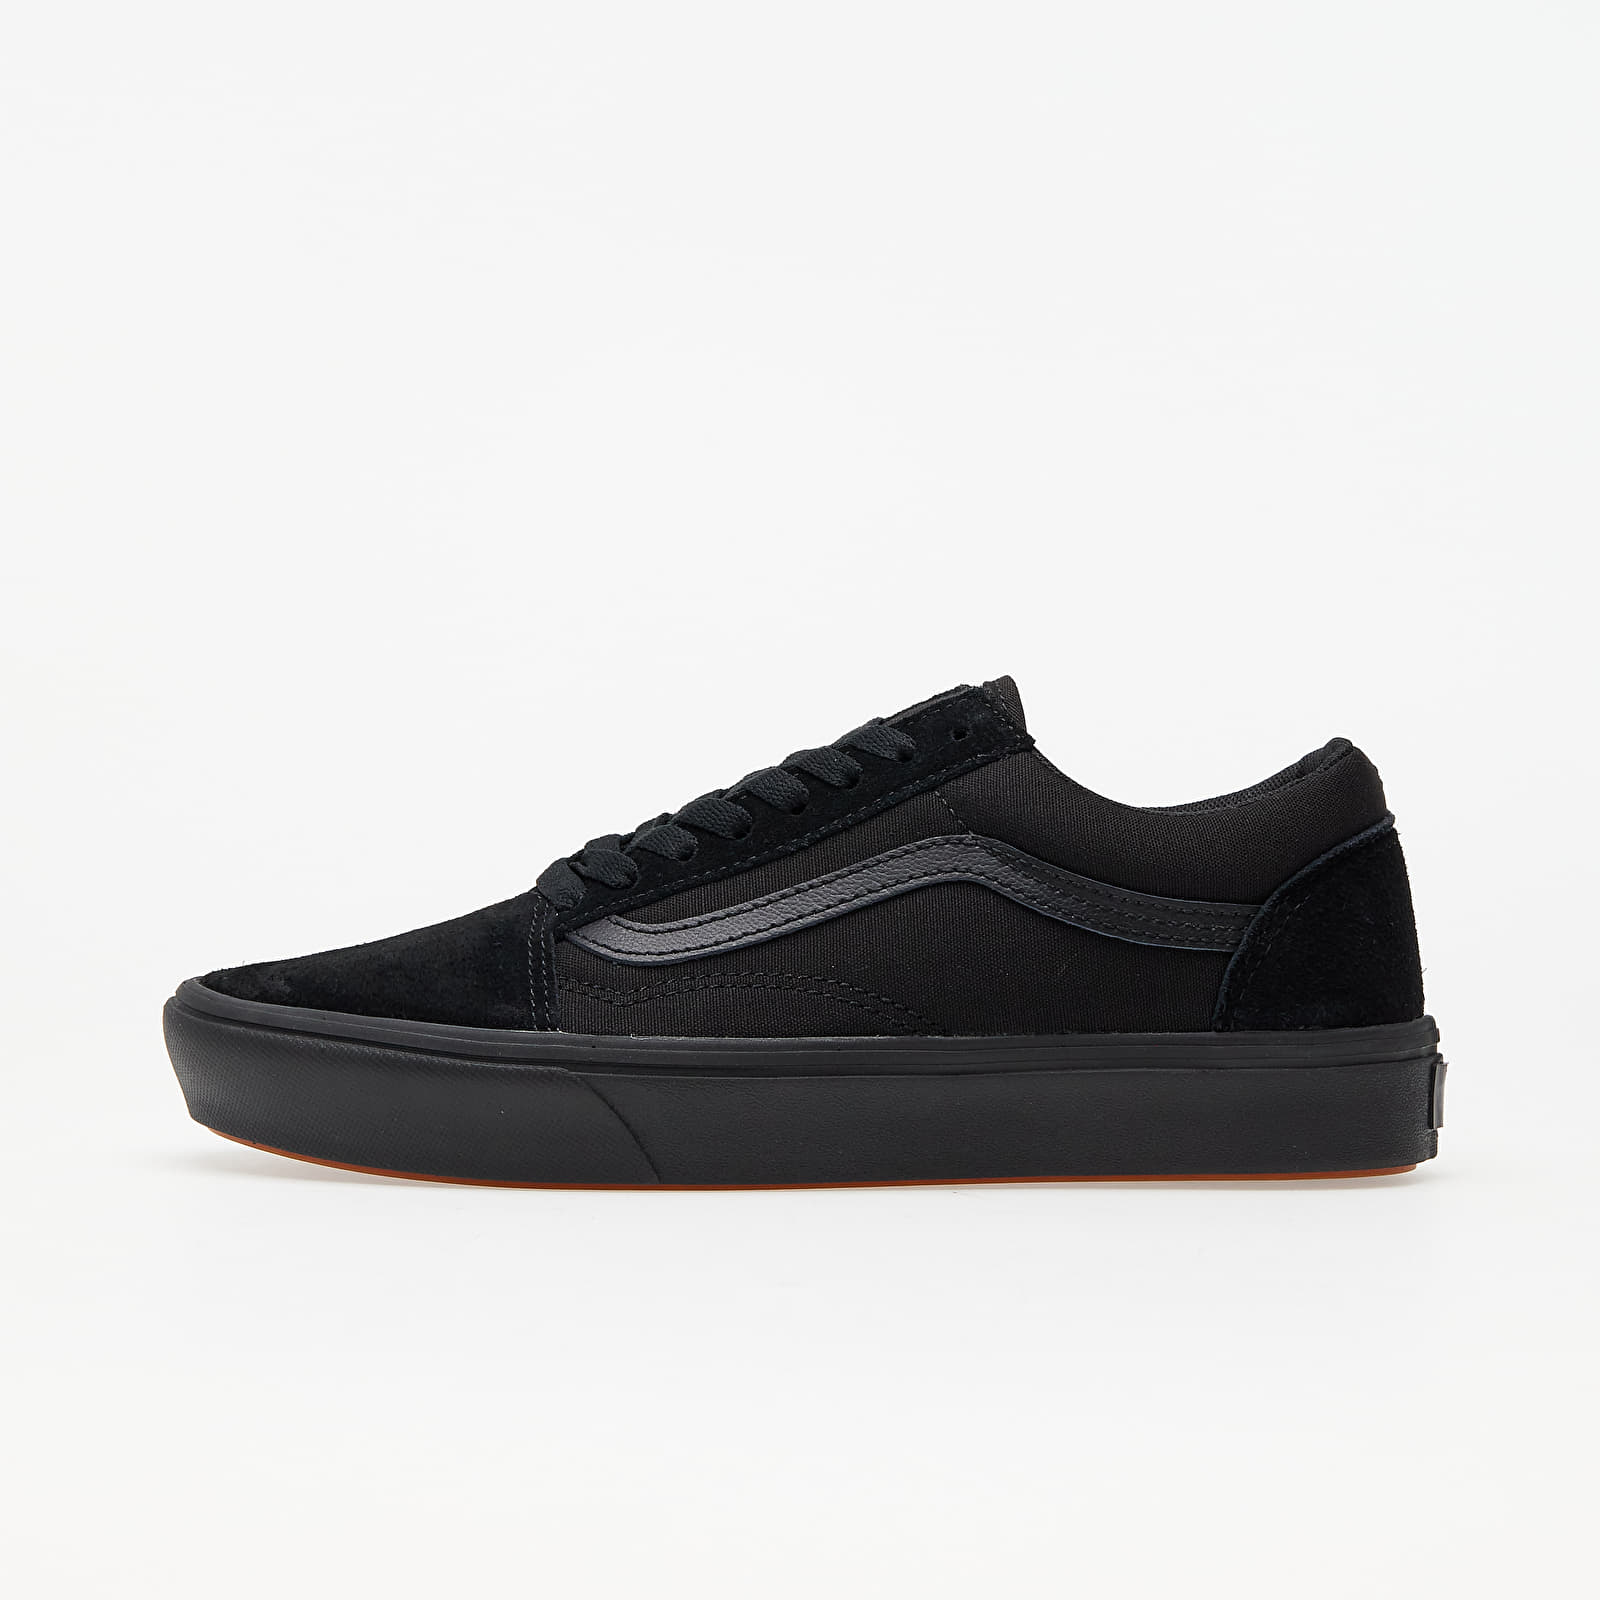 Vans ComfyCush Old Skool (Classic) Black/ Black EUR 34.5